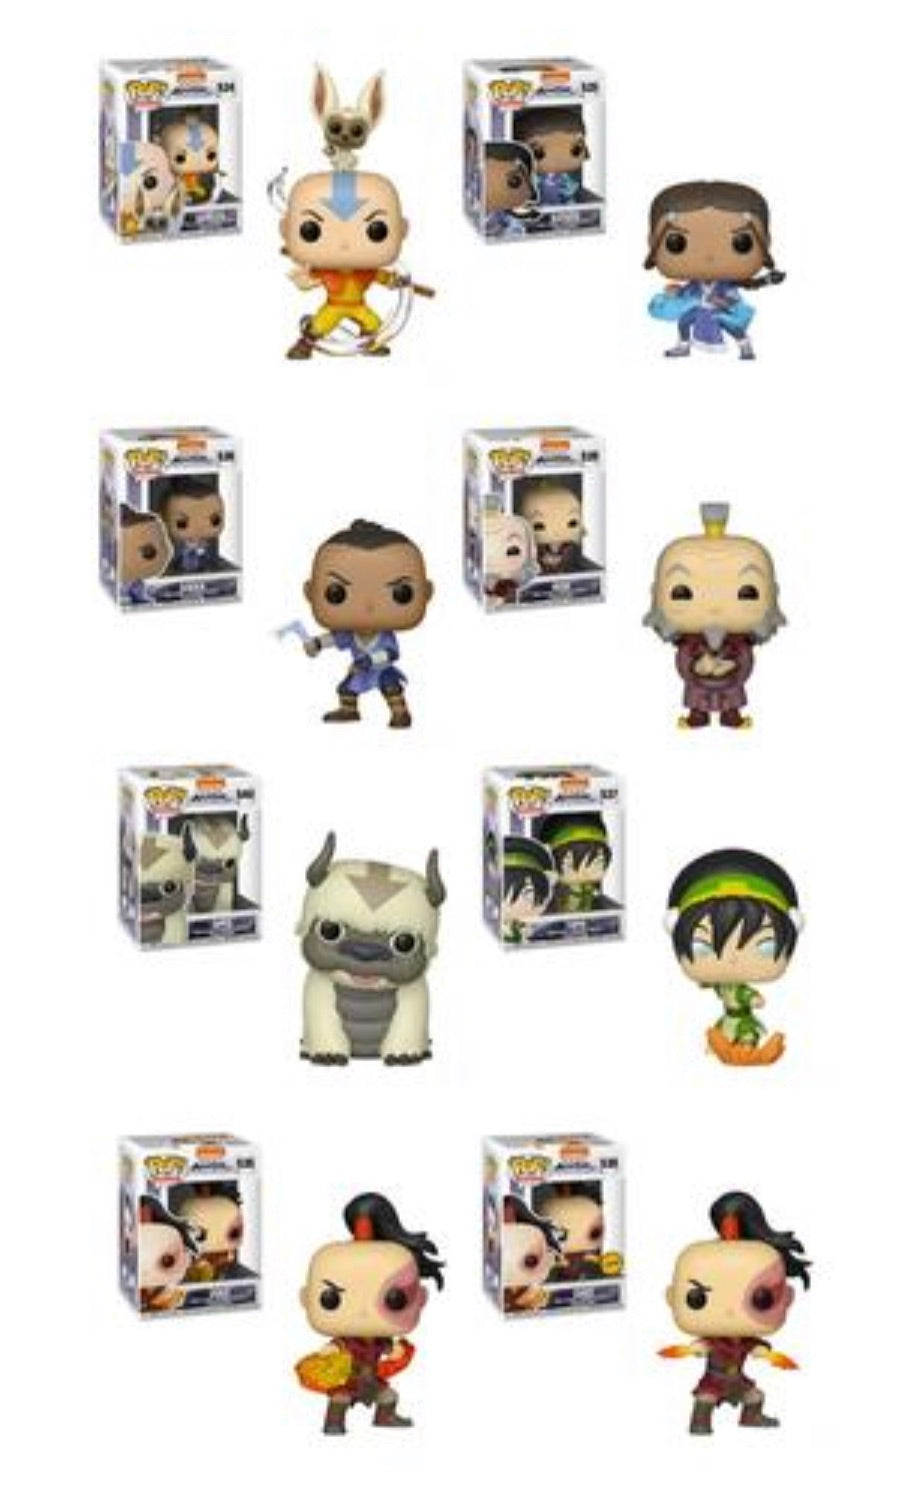 AVATAR: THE LAST AIRBENDER FUNKO POP! COMPLETE SET OF 8 CHASE INCLUDED (PRE-ORDER)